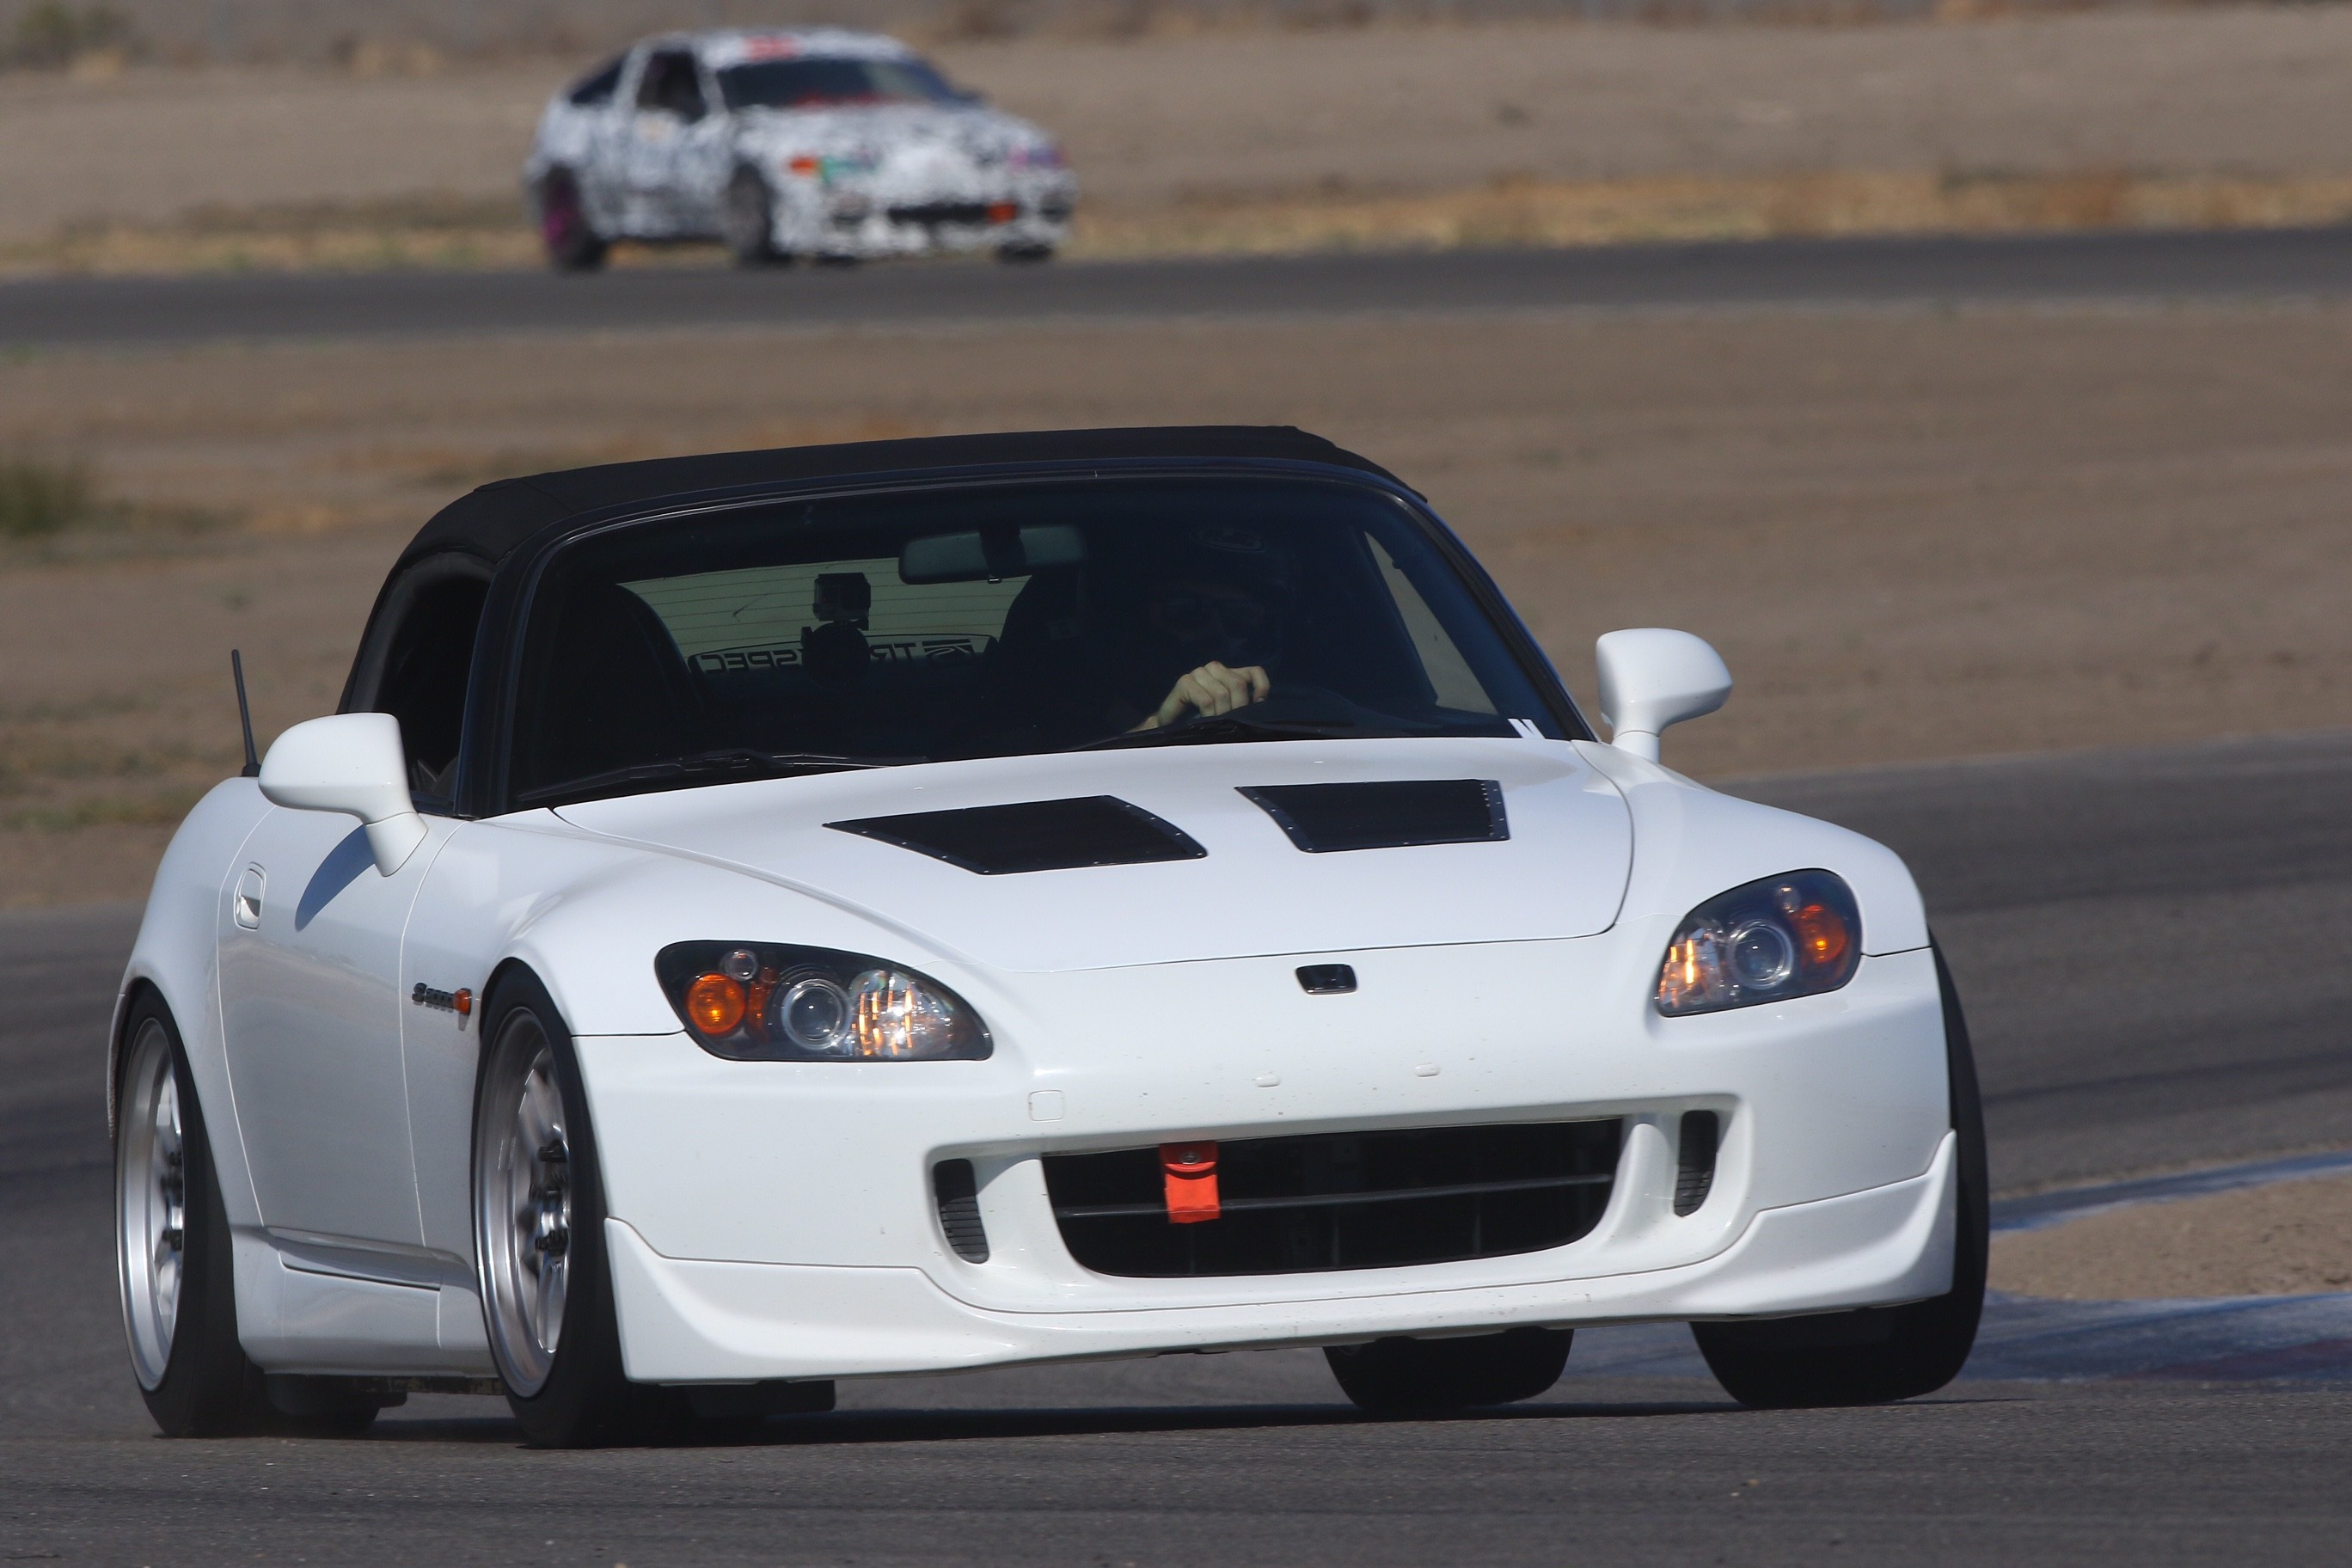 Honda S2000 Hood Louvers S2000 Shop By Vehicle